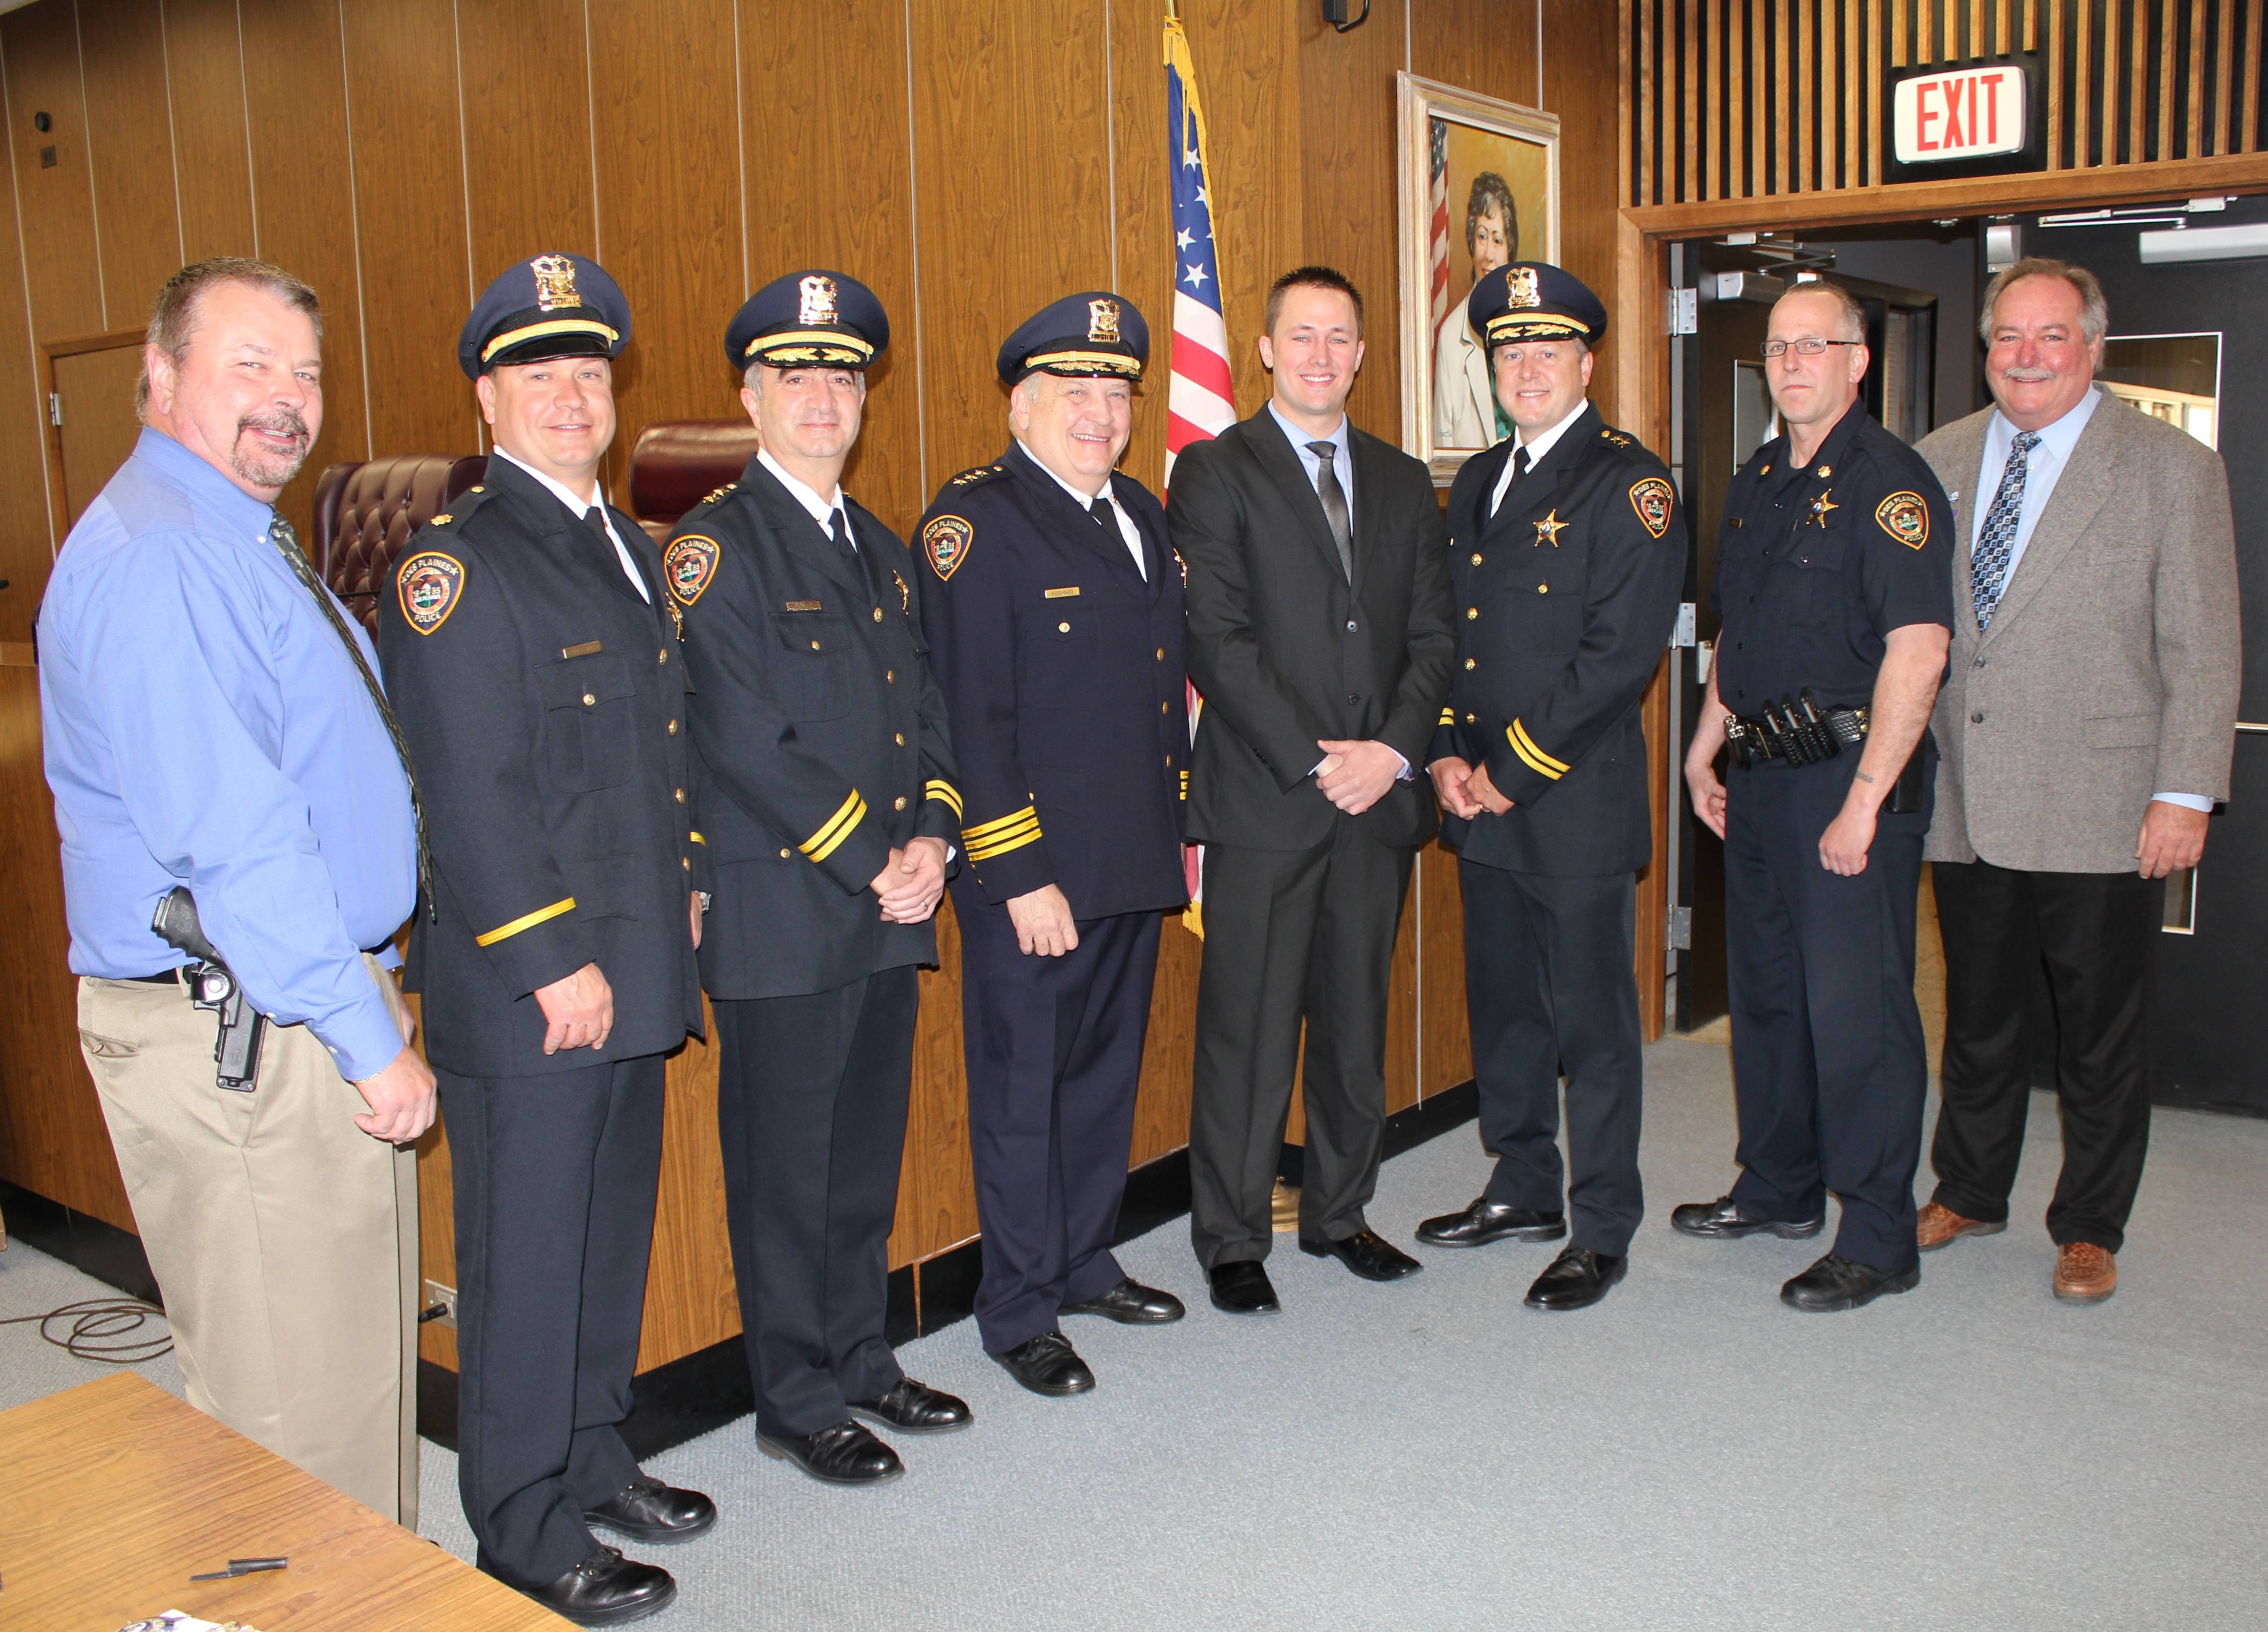 (pictured left to right) Des Plaines Police Commander Randy Akin, Commander Chet Zaprzalka, Deputy Chief Nick Treantafeles, Chief William Kushner, newly sworn Police Patrol Officer Dustin Kauth, Deputy Chief Paul Burger, Commander Chris Mierzwa, and Acting Mayor Mark Walsten pose for a photograph in the City Council Chambers following the swearing in ceremony on Thursday, May 2, 2013.